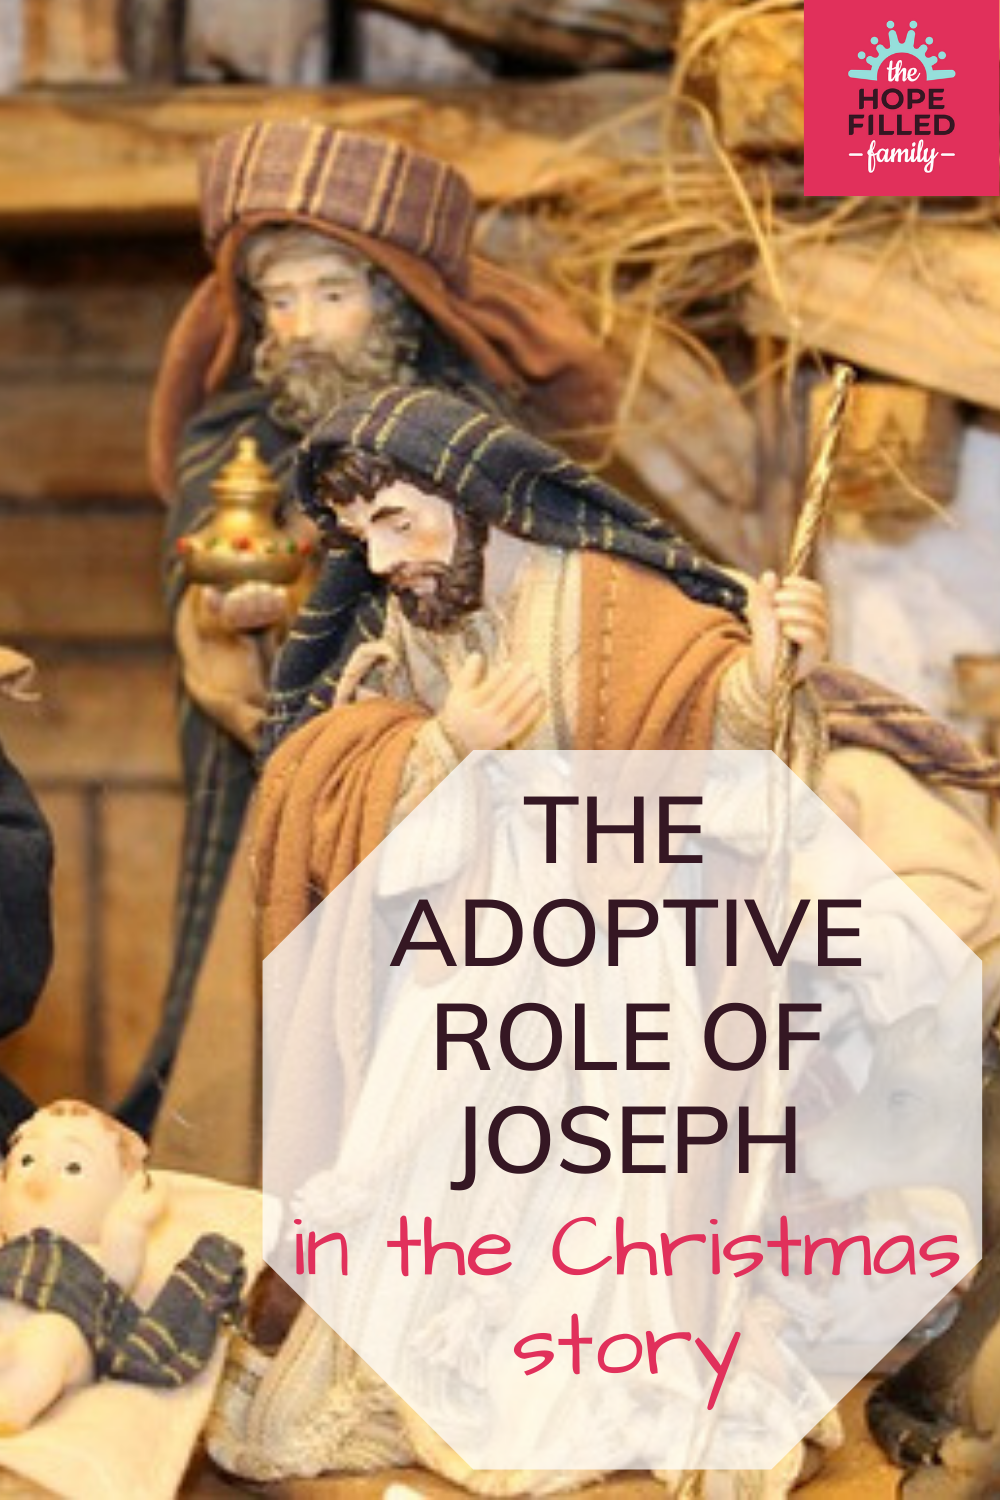 Joseph was an adoptive parent! Let's take a closer look at his role.